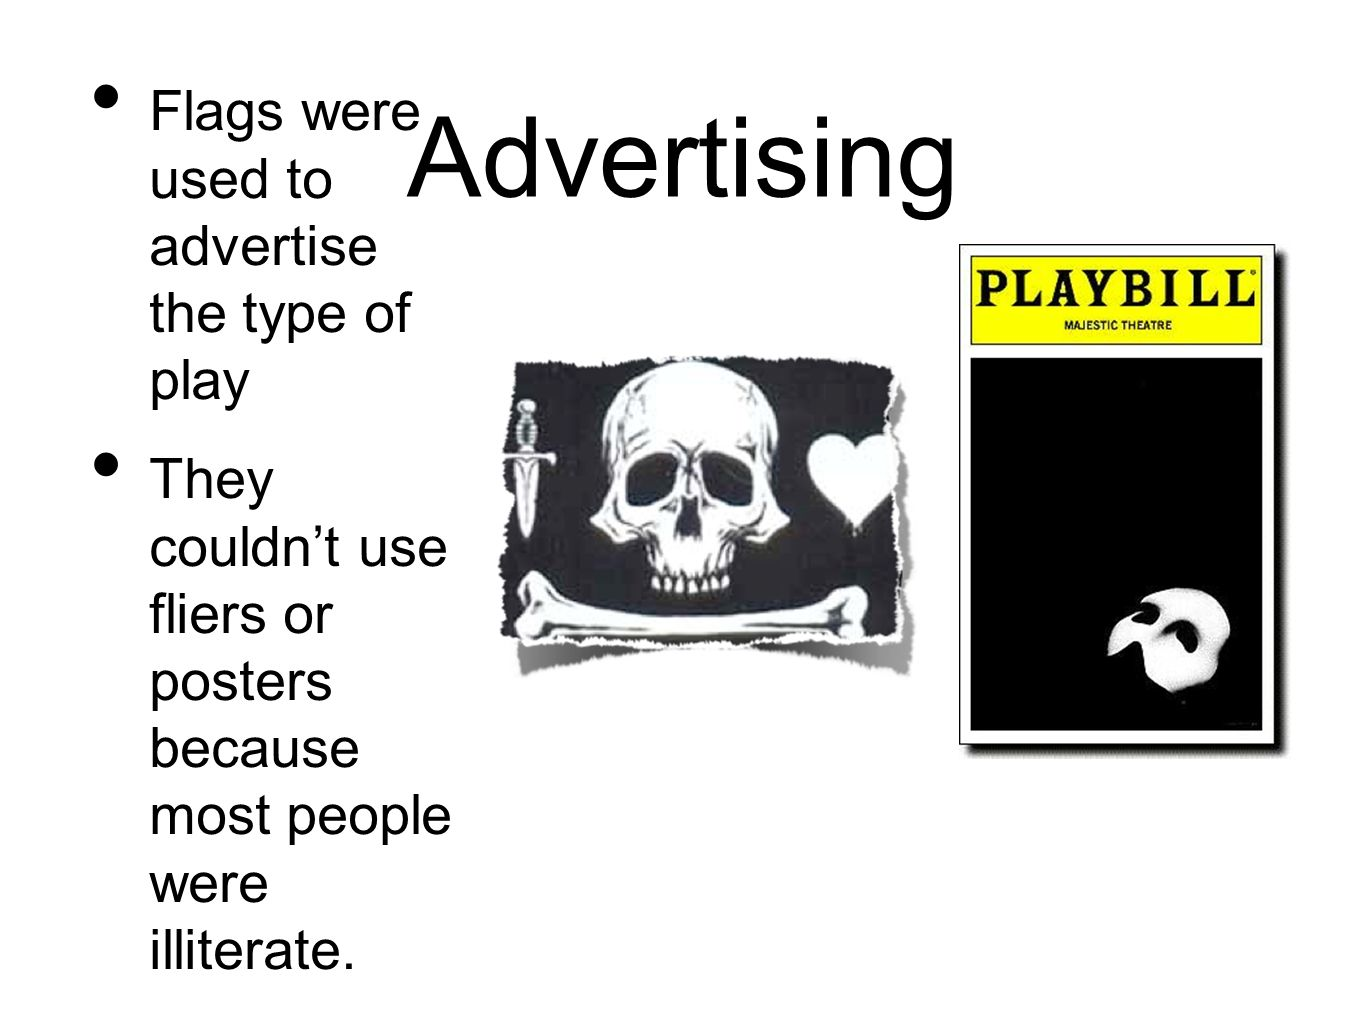 Advertising Flags were used to advertise the type of play They couldnt use fliers or posters because most people were illiterate.